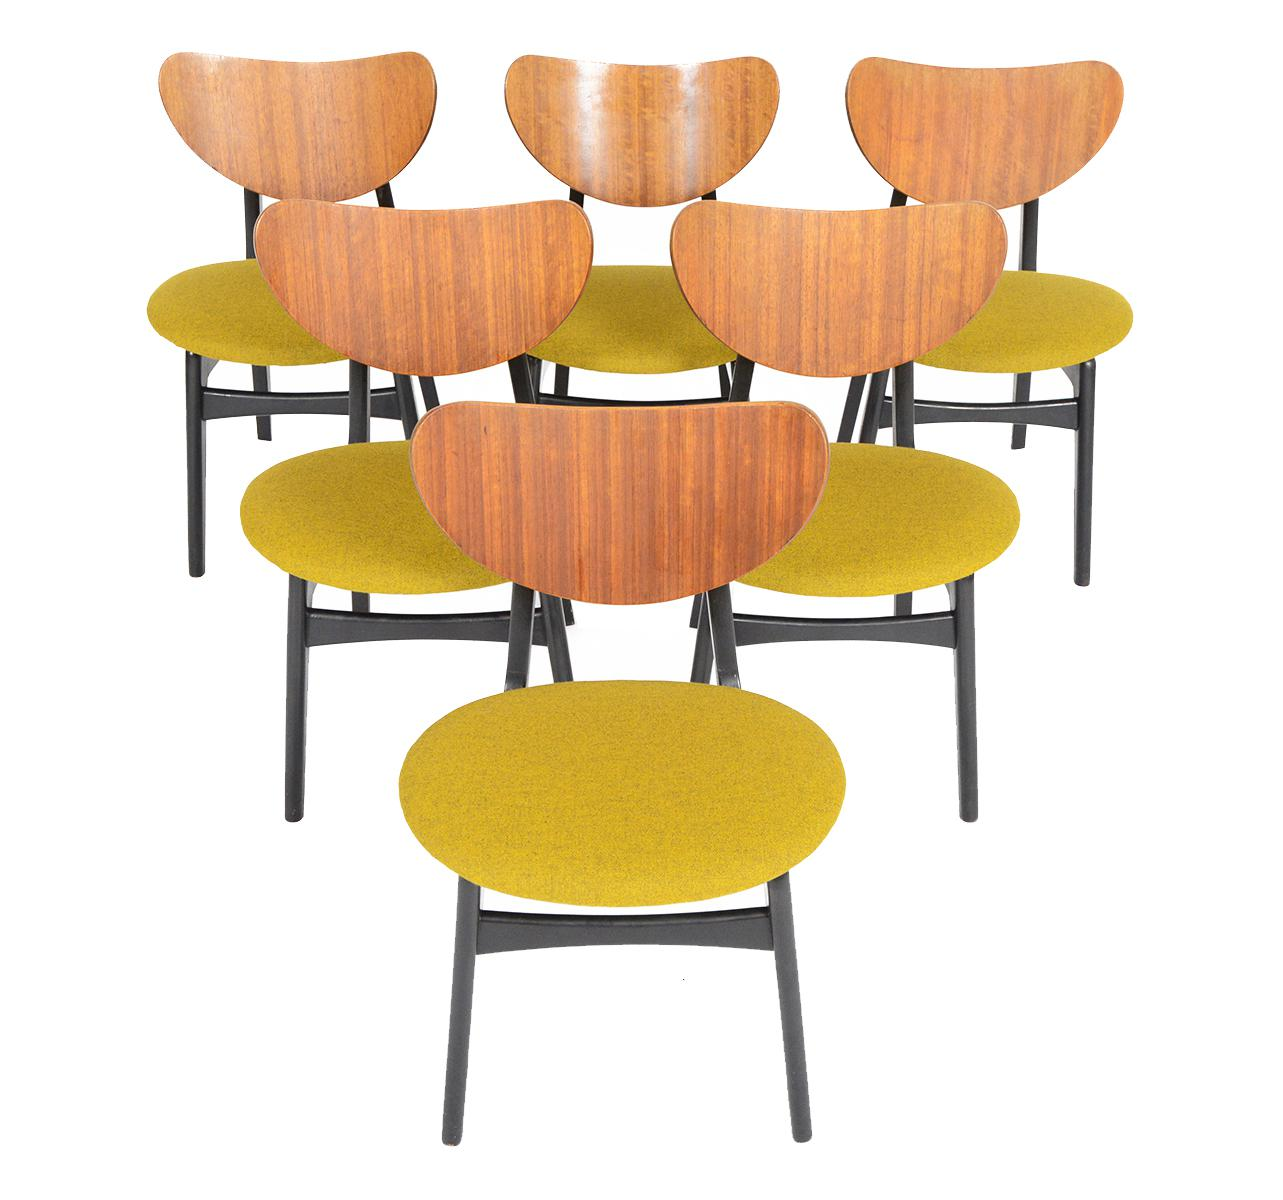 G Plan Librenza Chartreuse Dining Chairs Set of 6 Chairish : g plan librenza chartreuse dining chairs set of 6 4982 from www.chairish.com size 1283 x 1200 jpeg 114kB